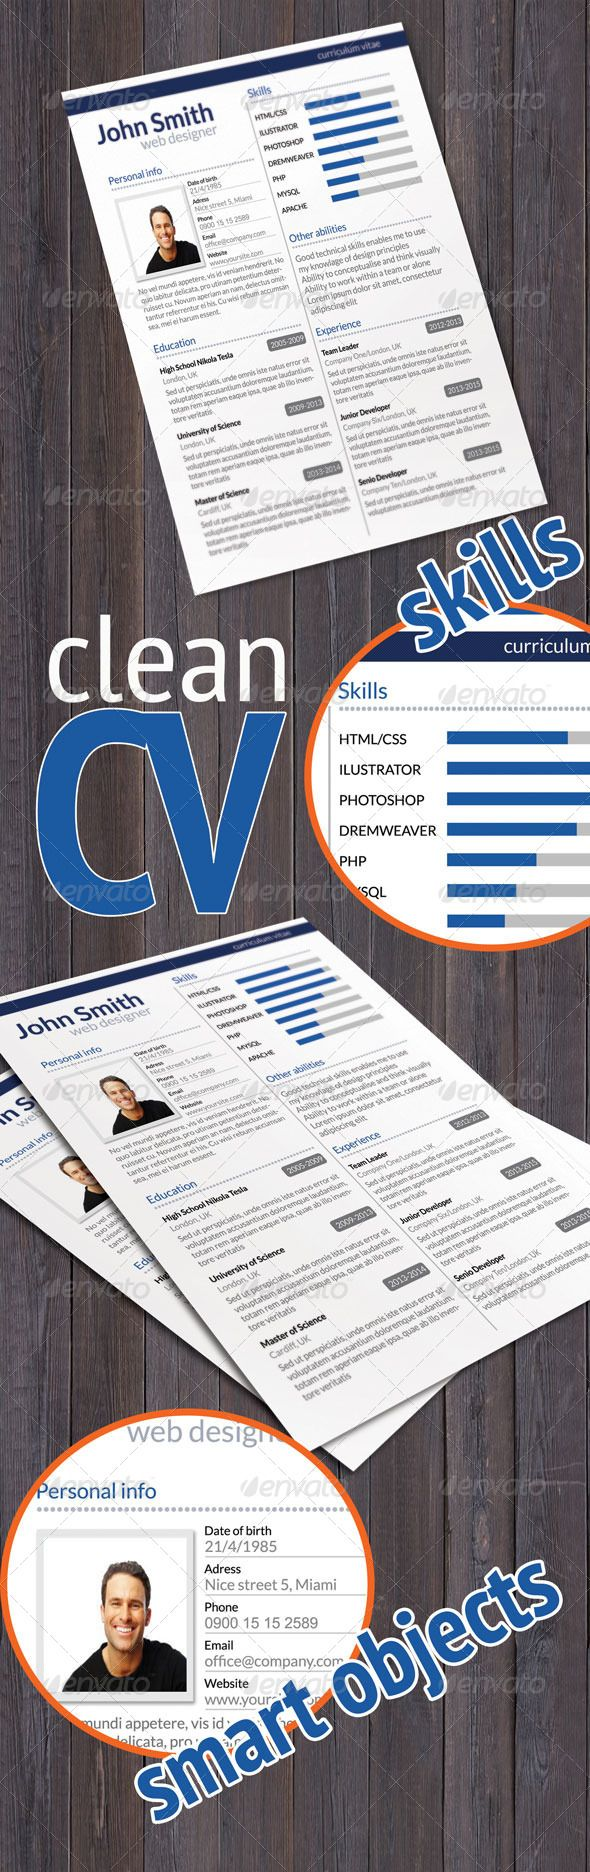 Clean CV  #GraphicRiver        Clean CV  Elegant CV, ideal for your application for job  Modern and Clean Resume  File include 1 PSD file  Fully layerd  Free font used: Lato (  .google /fonts/specimen/Lato ) Please dont't forget to rate!                     Created: 6 December 13                    Graphics Files Included:   Photoshop PSD                   Layered:   Yes                   Minimum Adobe CS Version:   CS                   Print Dimensions:   8.5x11             Tags…